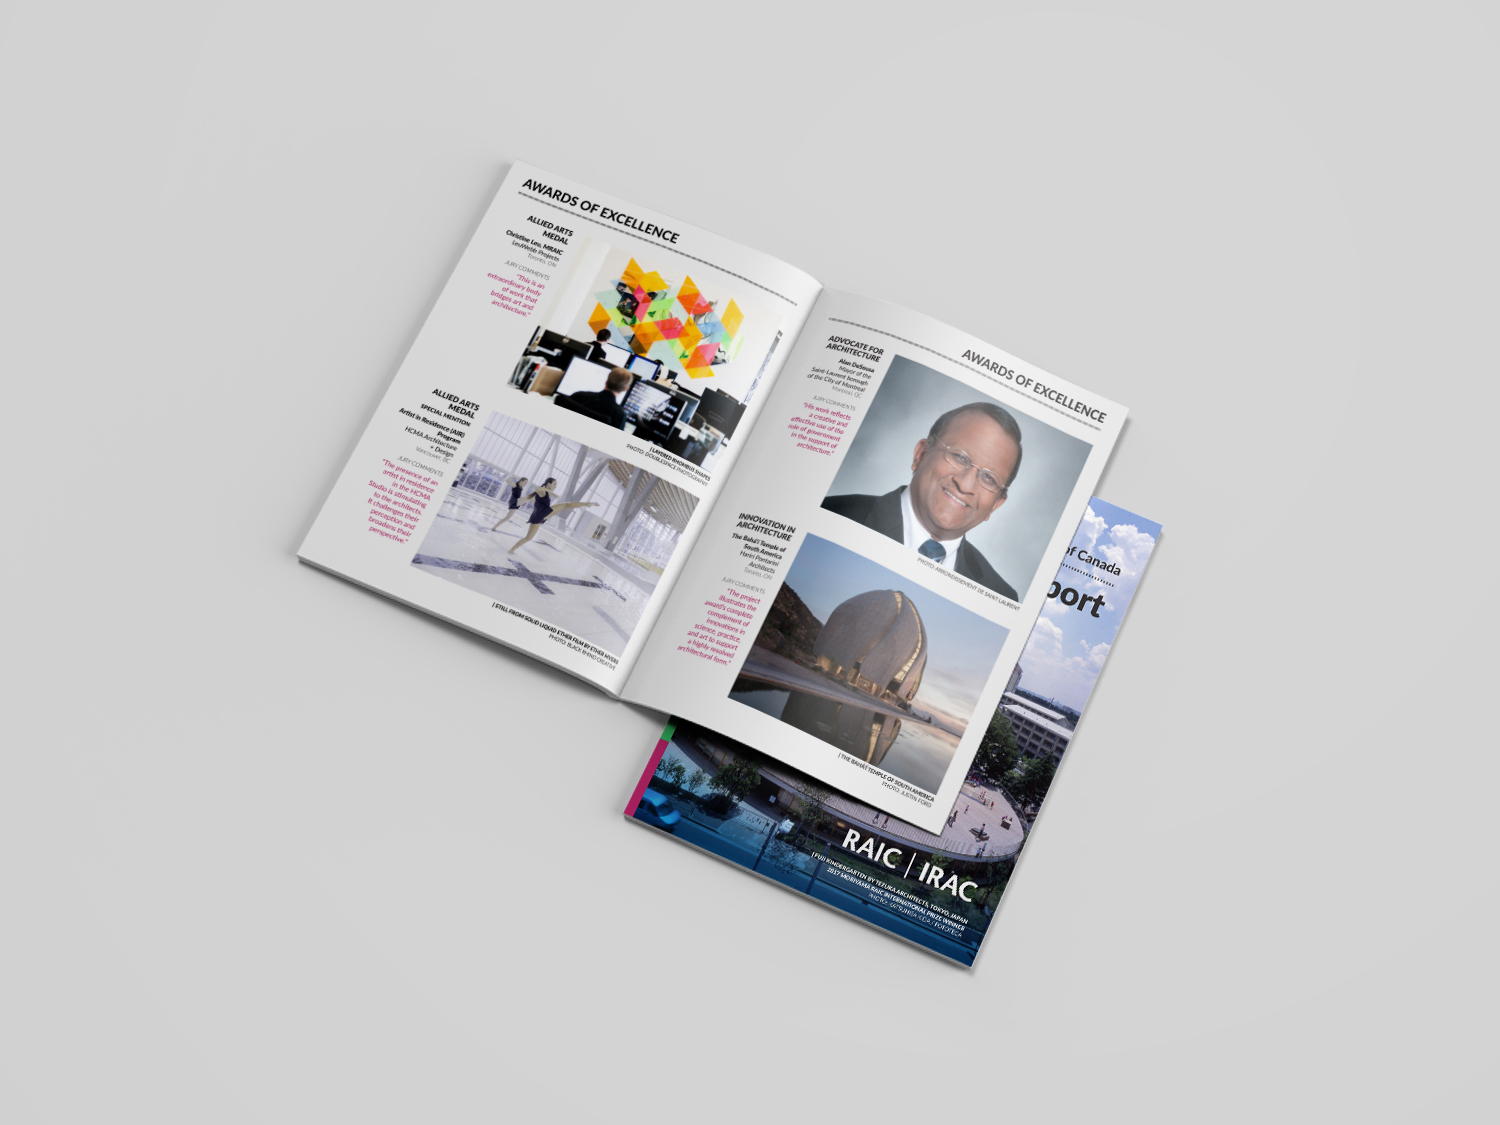 RAIC-Annual-Report-Cover-and-Spread.jpg